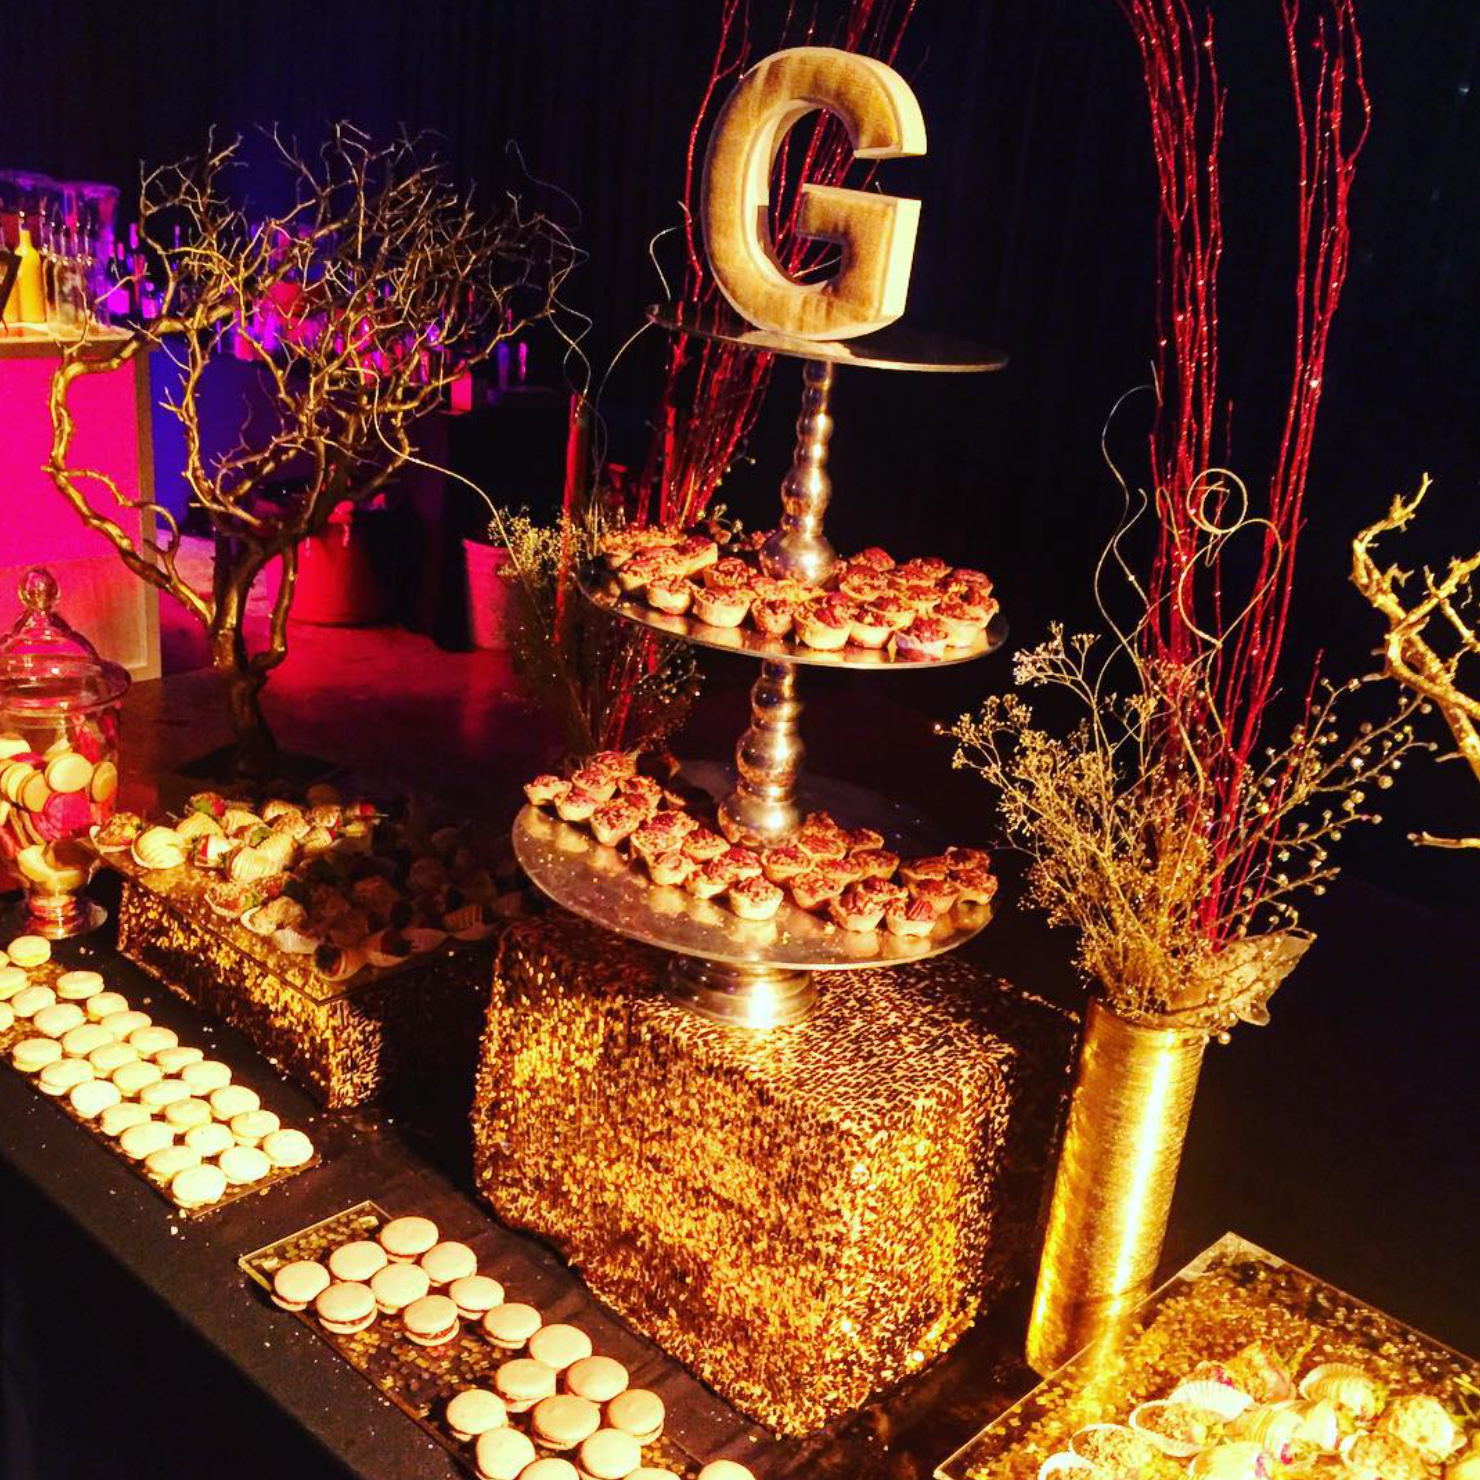 All Gold Desserts Topped with a Gensler G